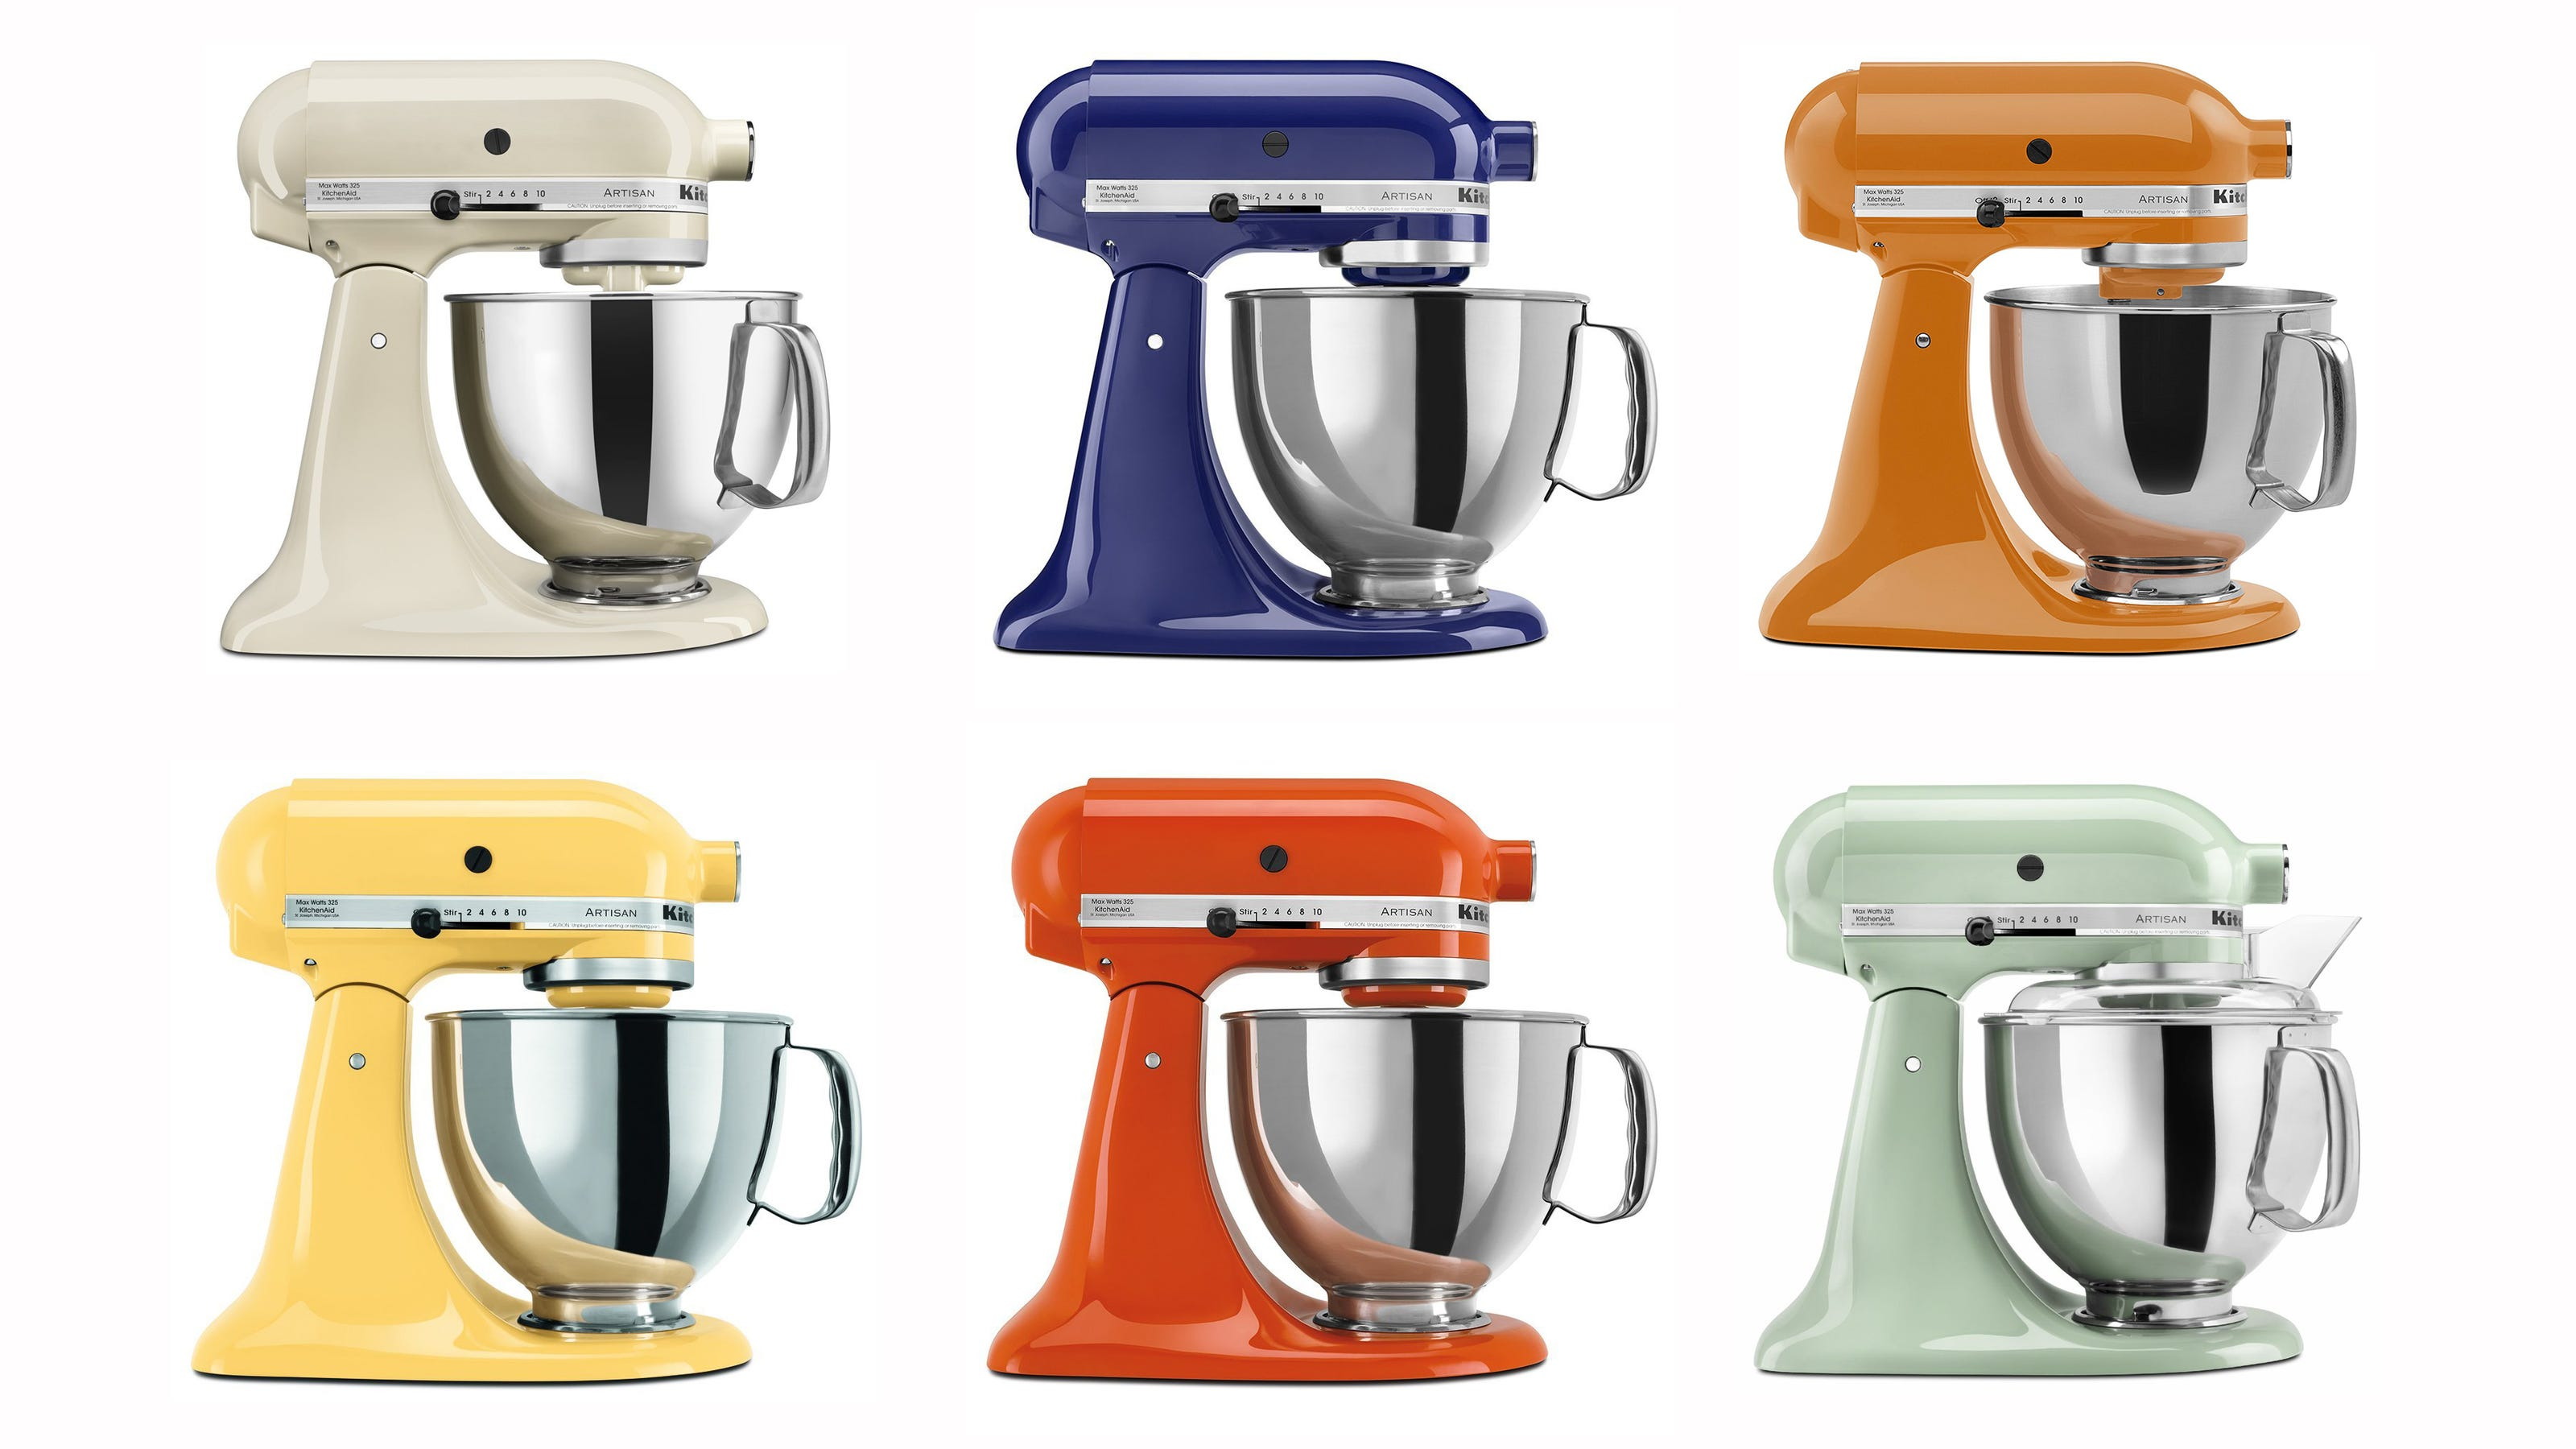 Kitchenaid S Popular Stand Mixer Is At Its Lowest Price In